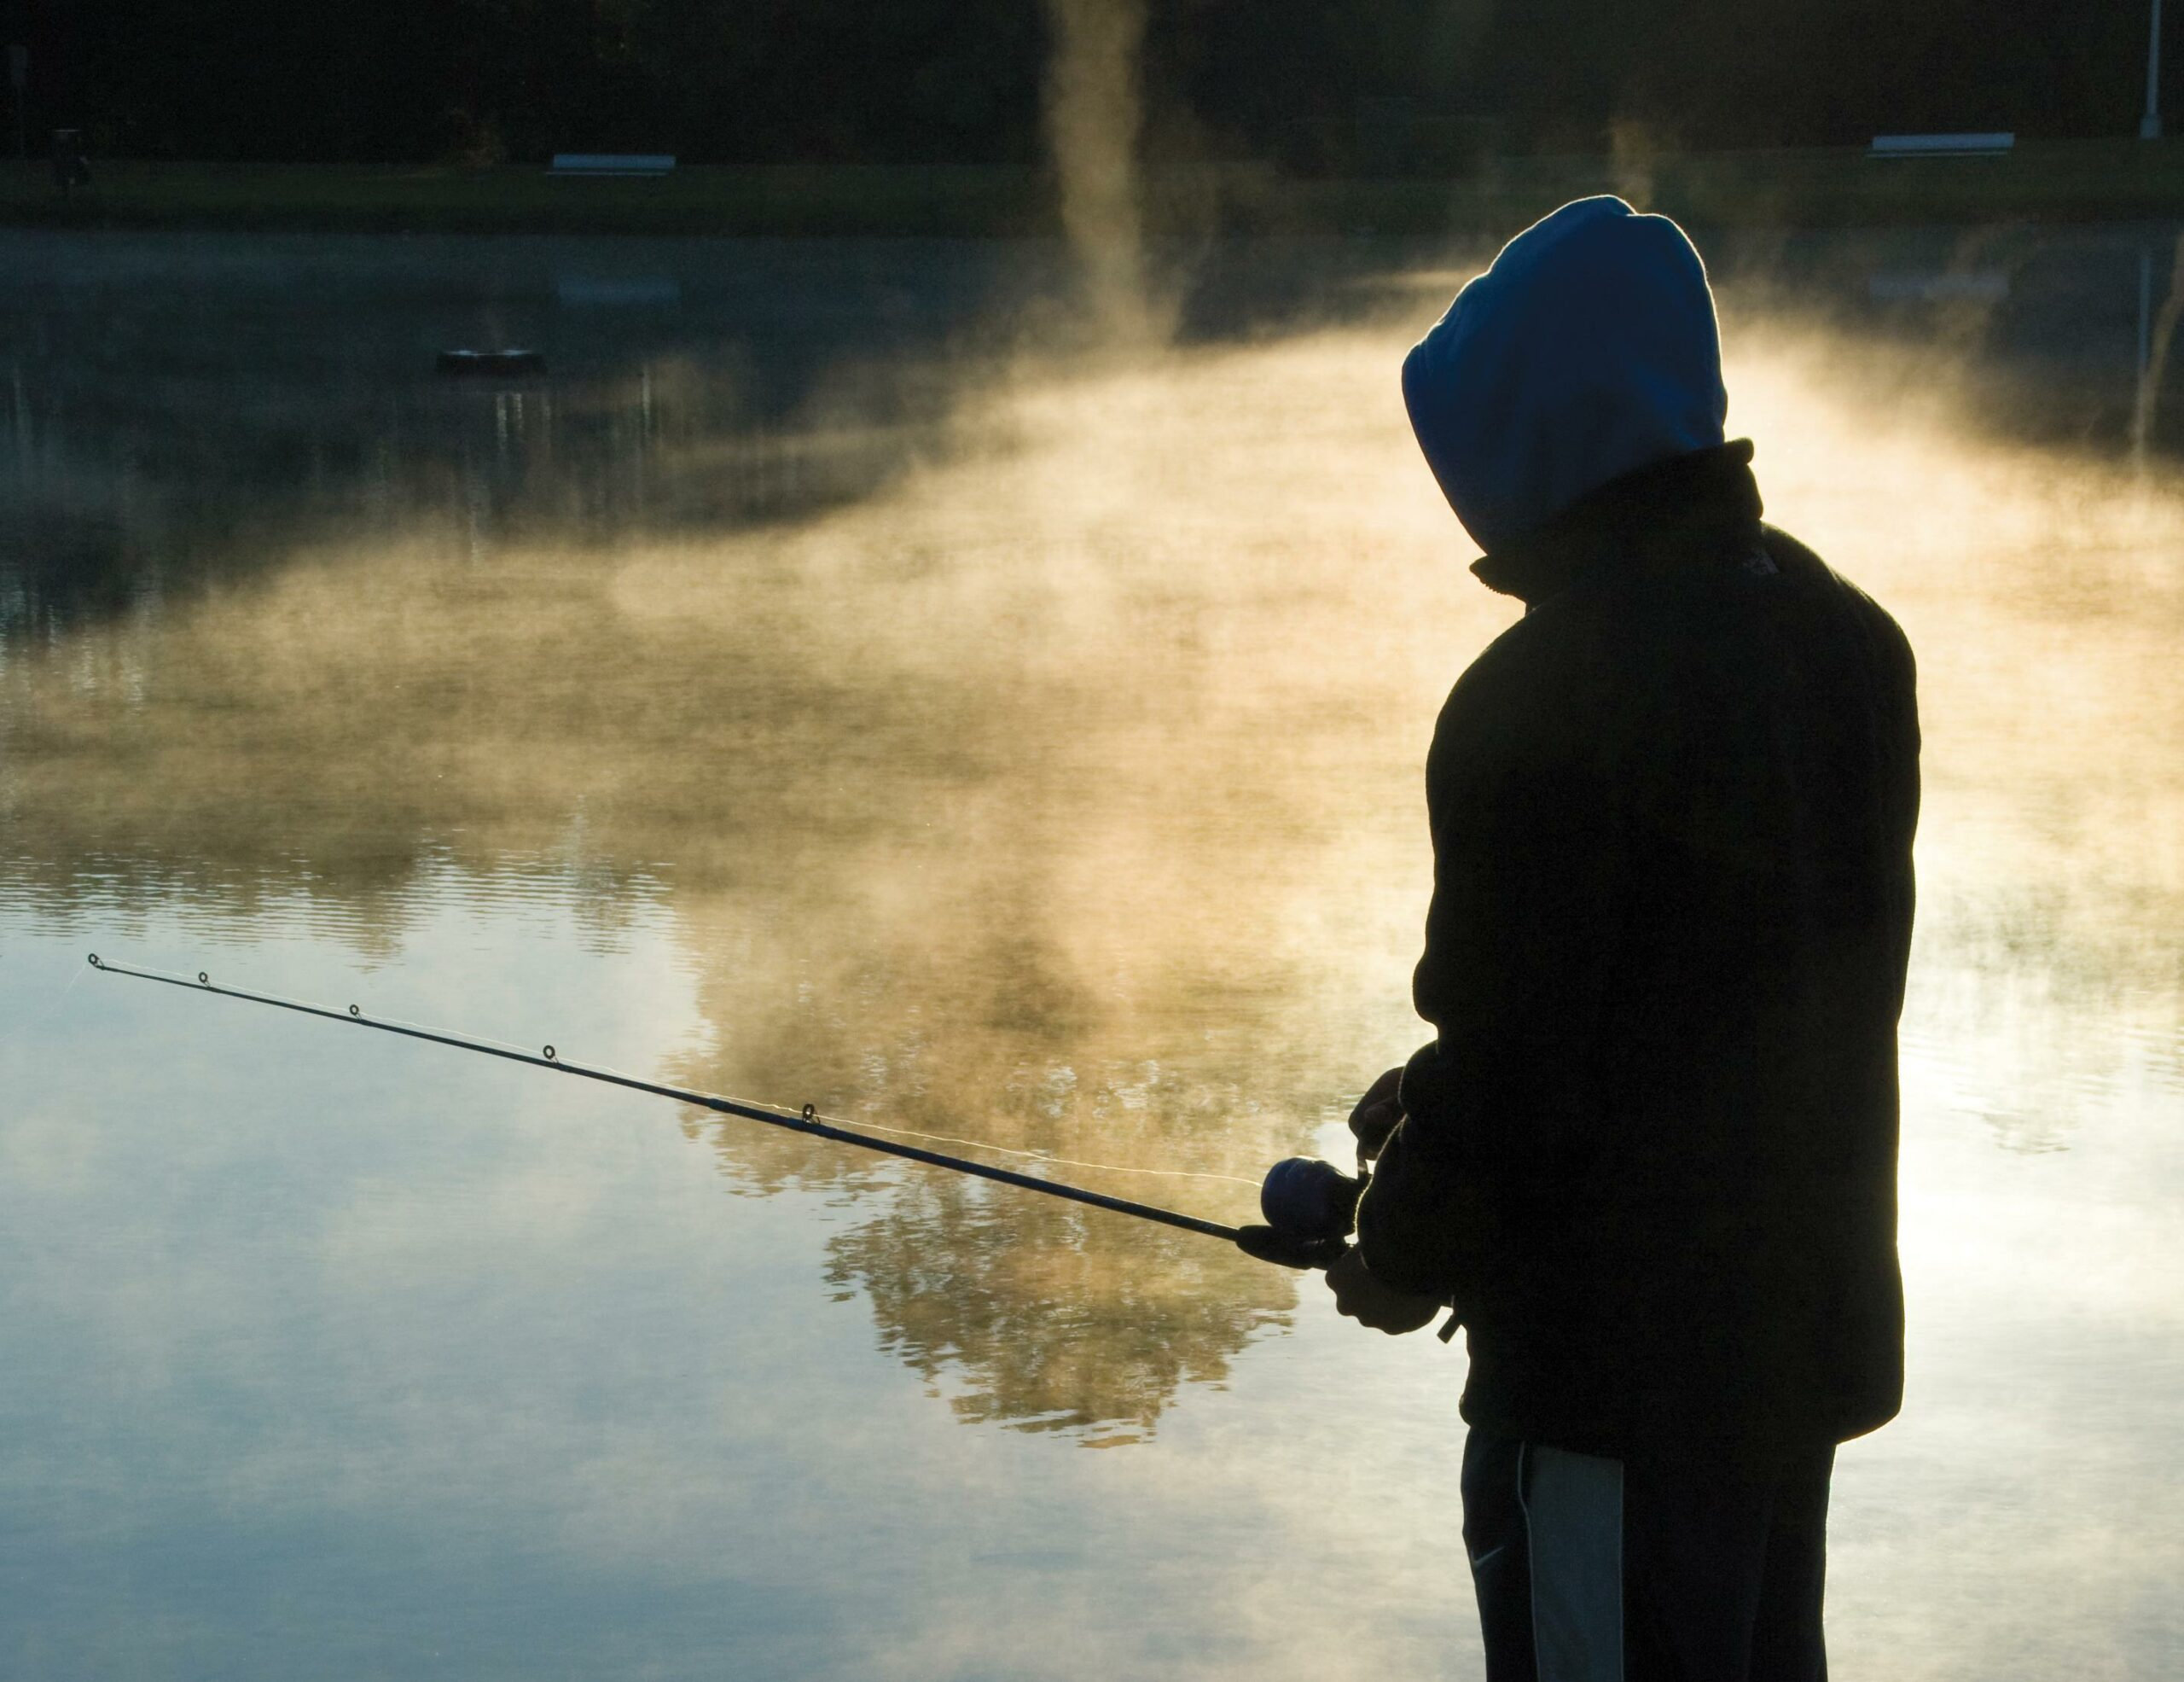 Boy fishing with a casting rod and spin-cast reel.